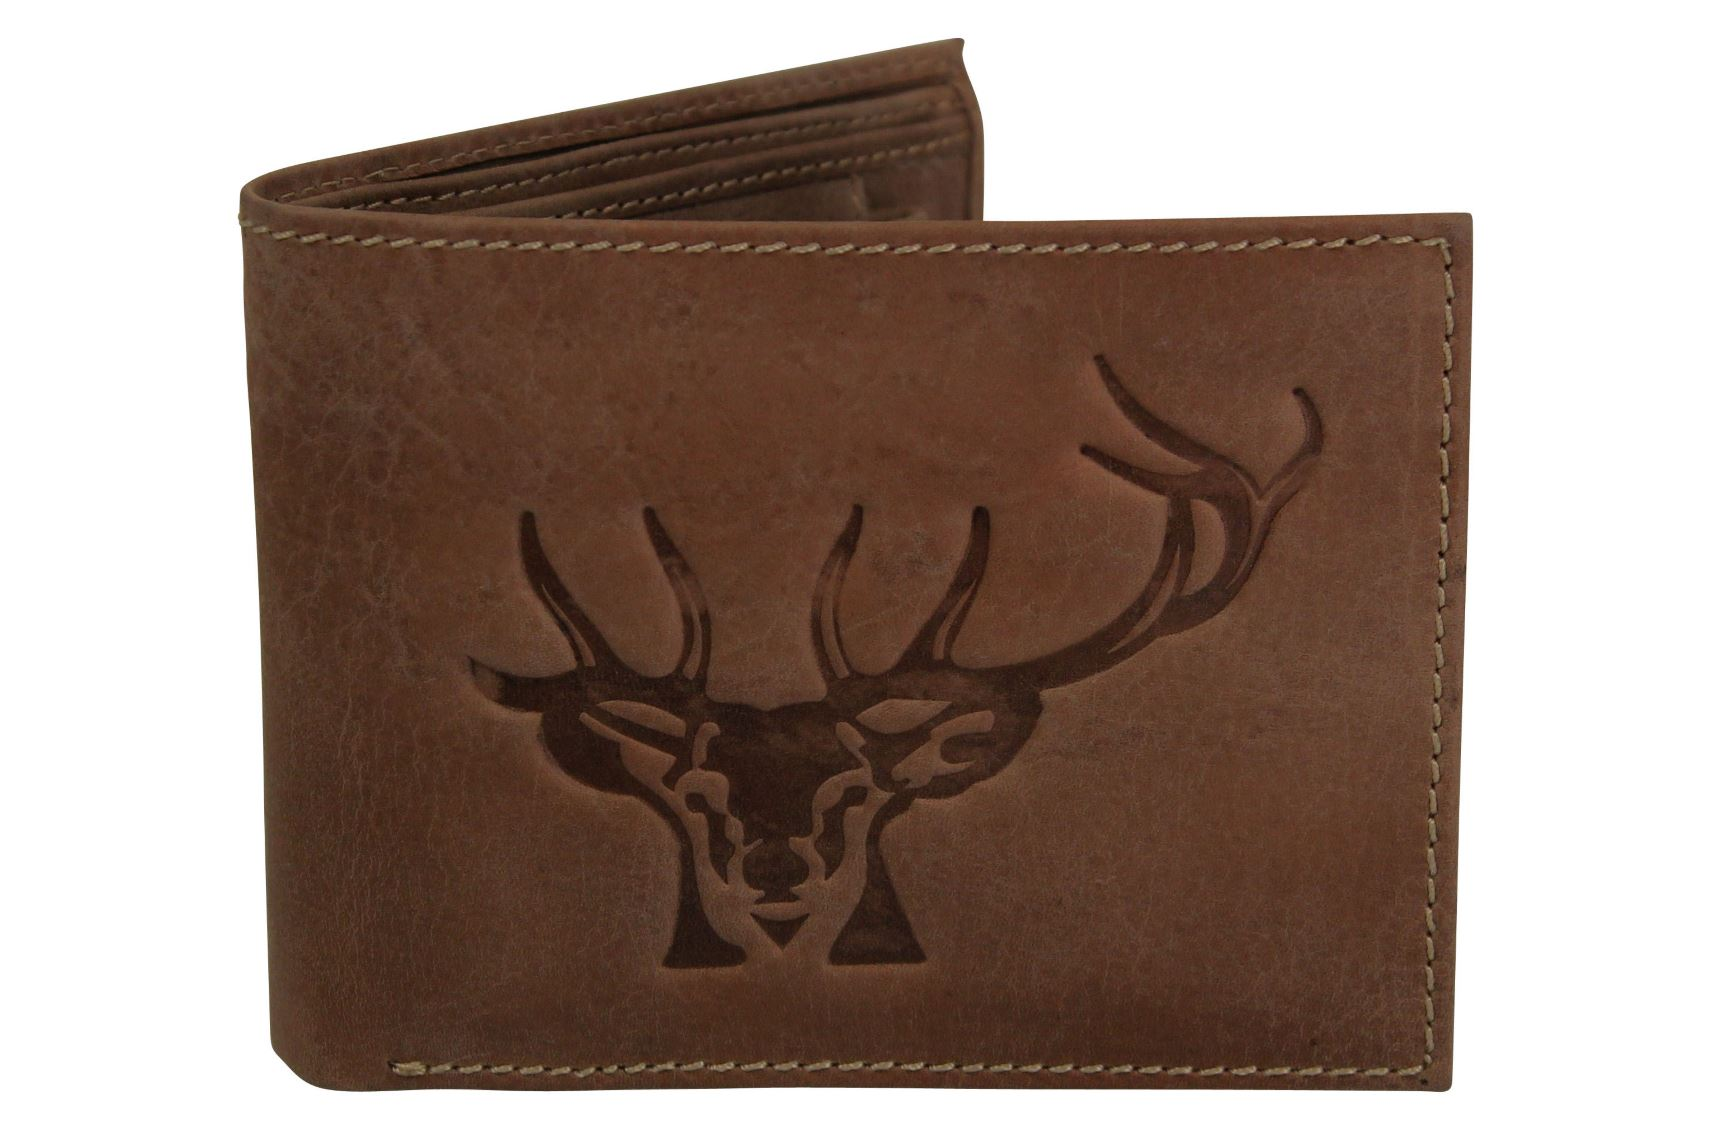 Mens Genuine Leather Wallet by Xact Clothing Embossed Stags Head-Main Image